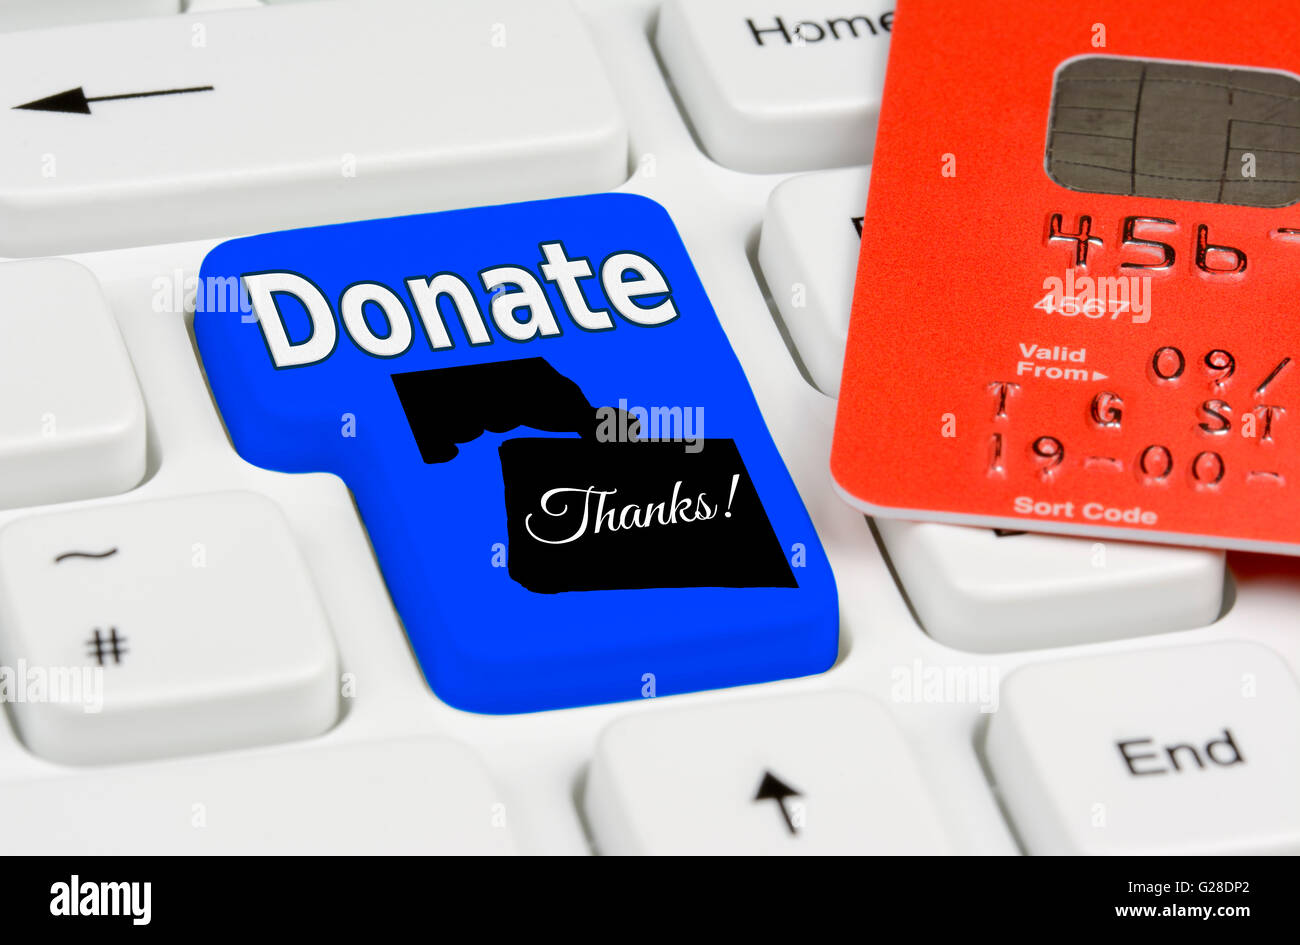 Donate button and payment card on a computer keyboard. - Stock Image